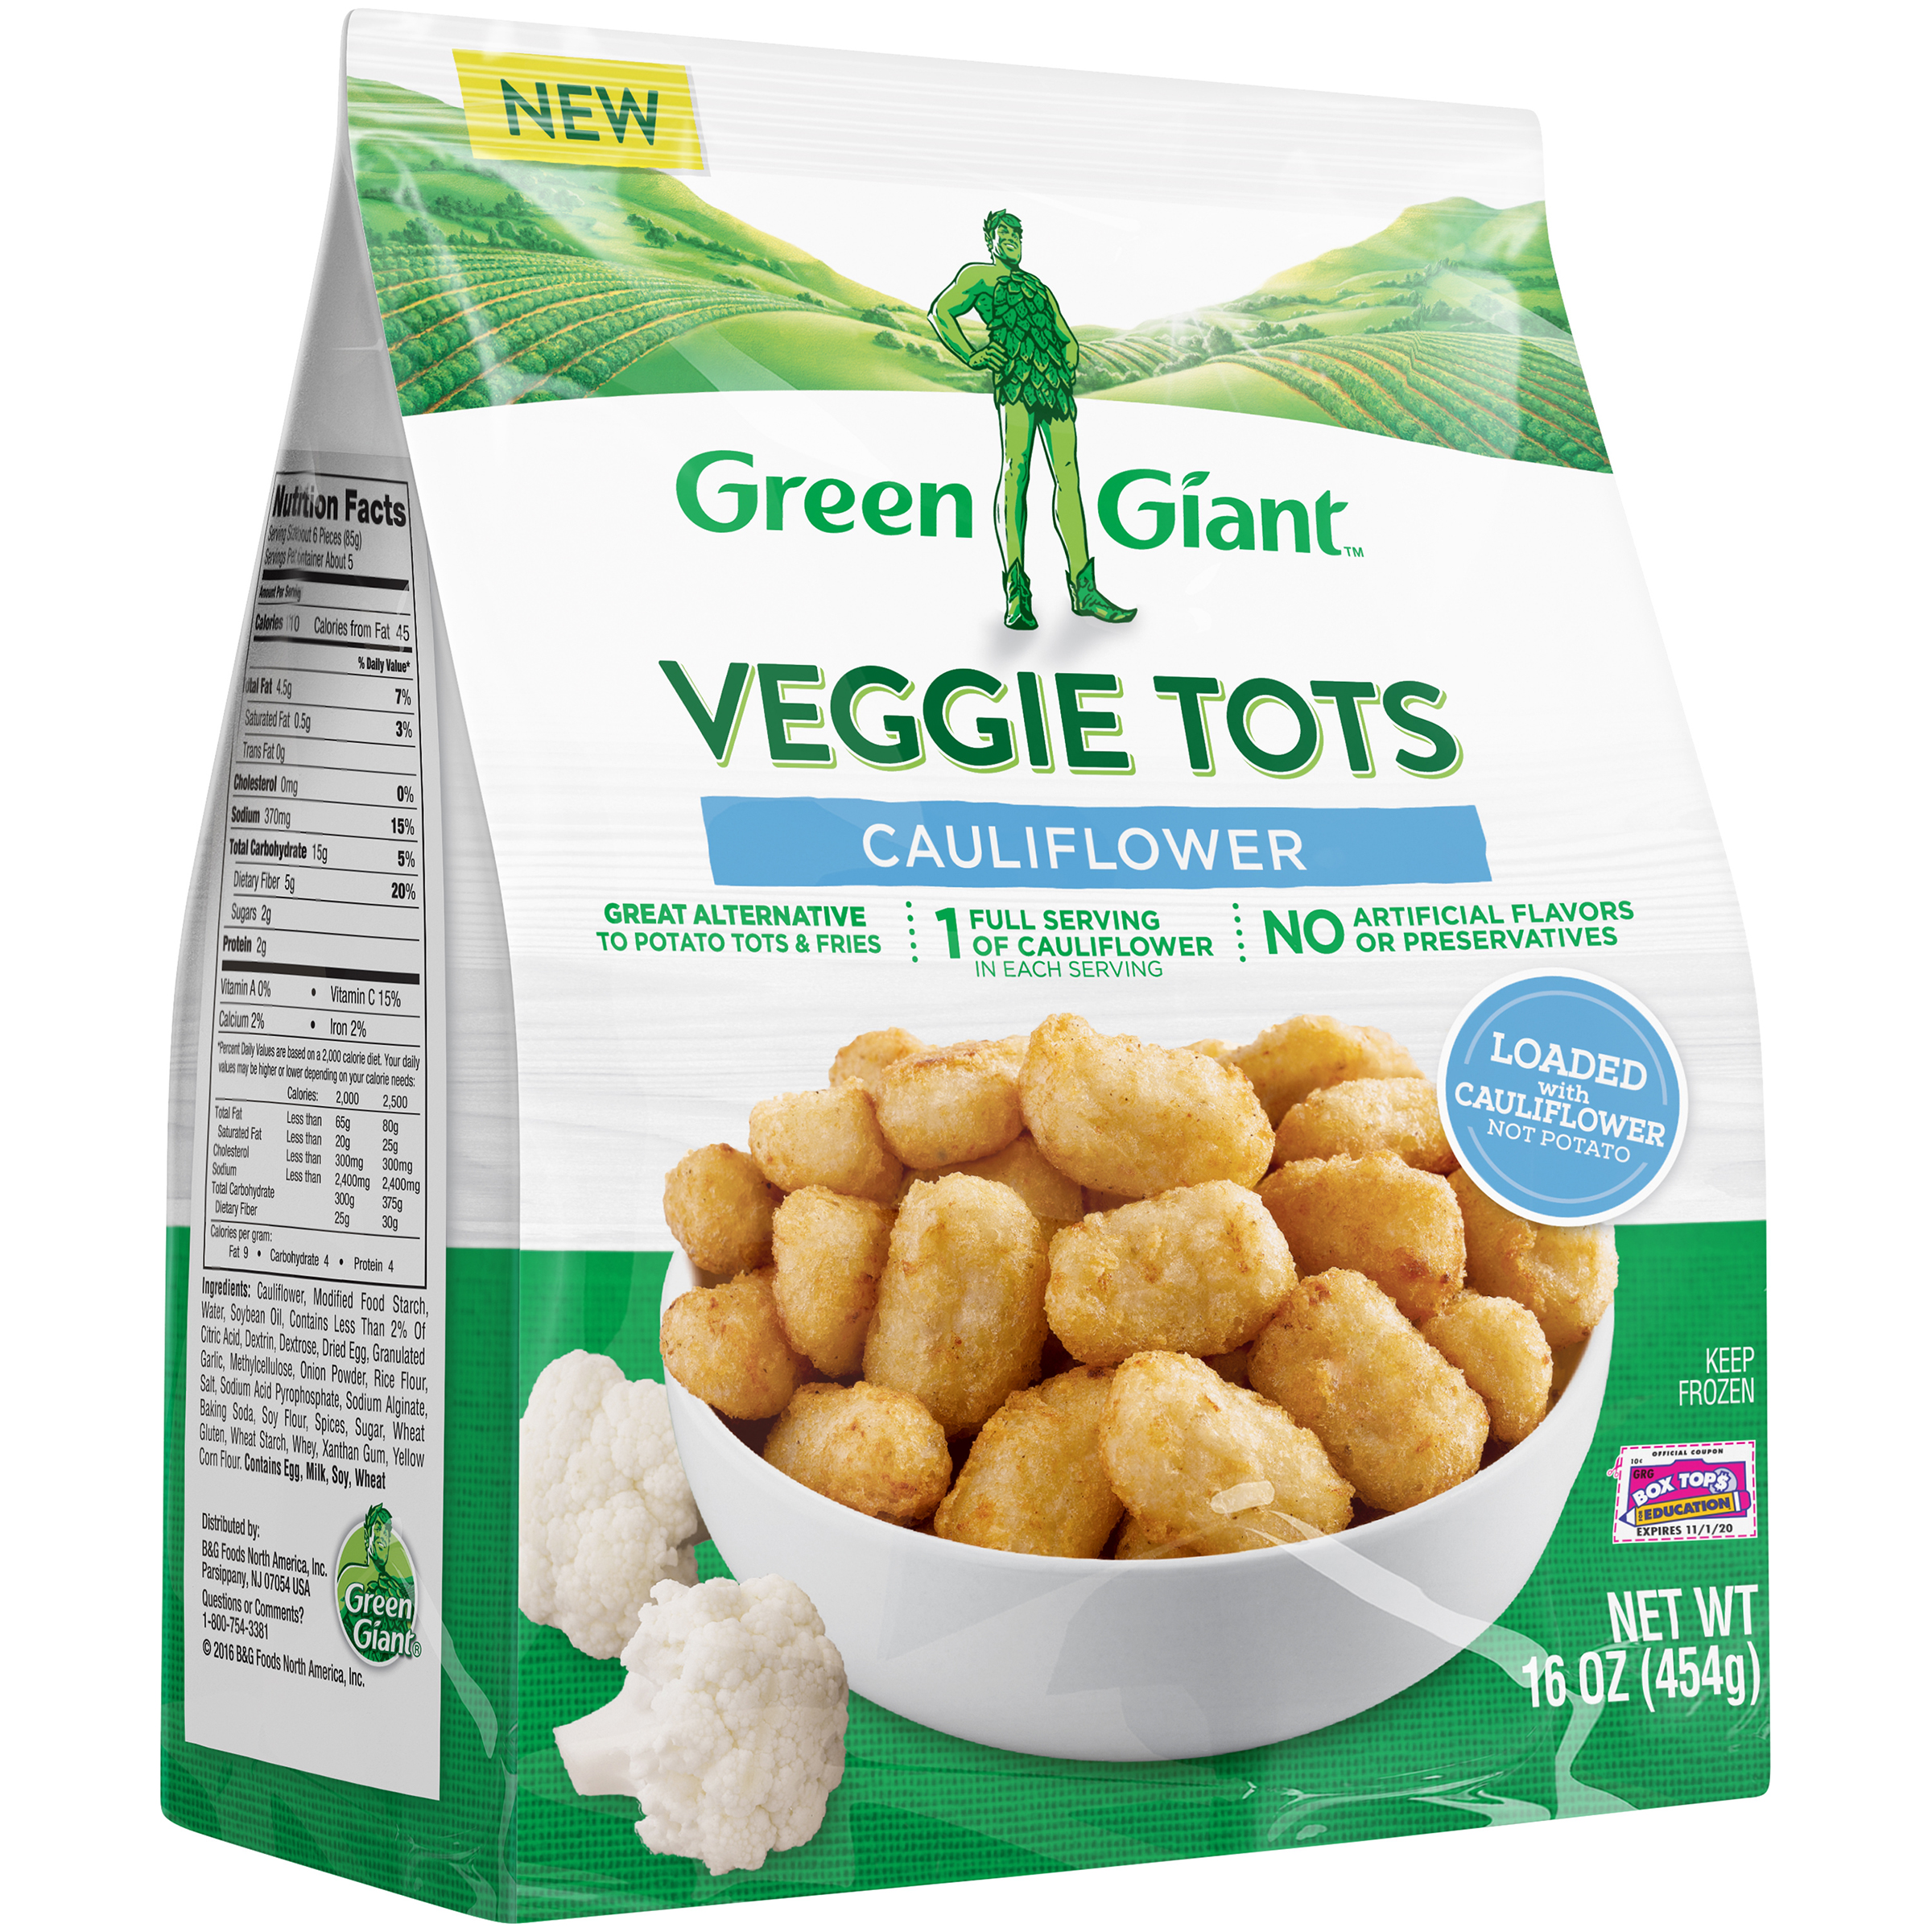 Green Giant Cauliflower Veggie Tots, 16 oz